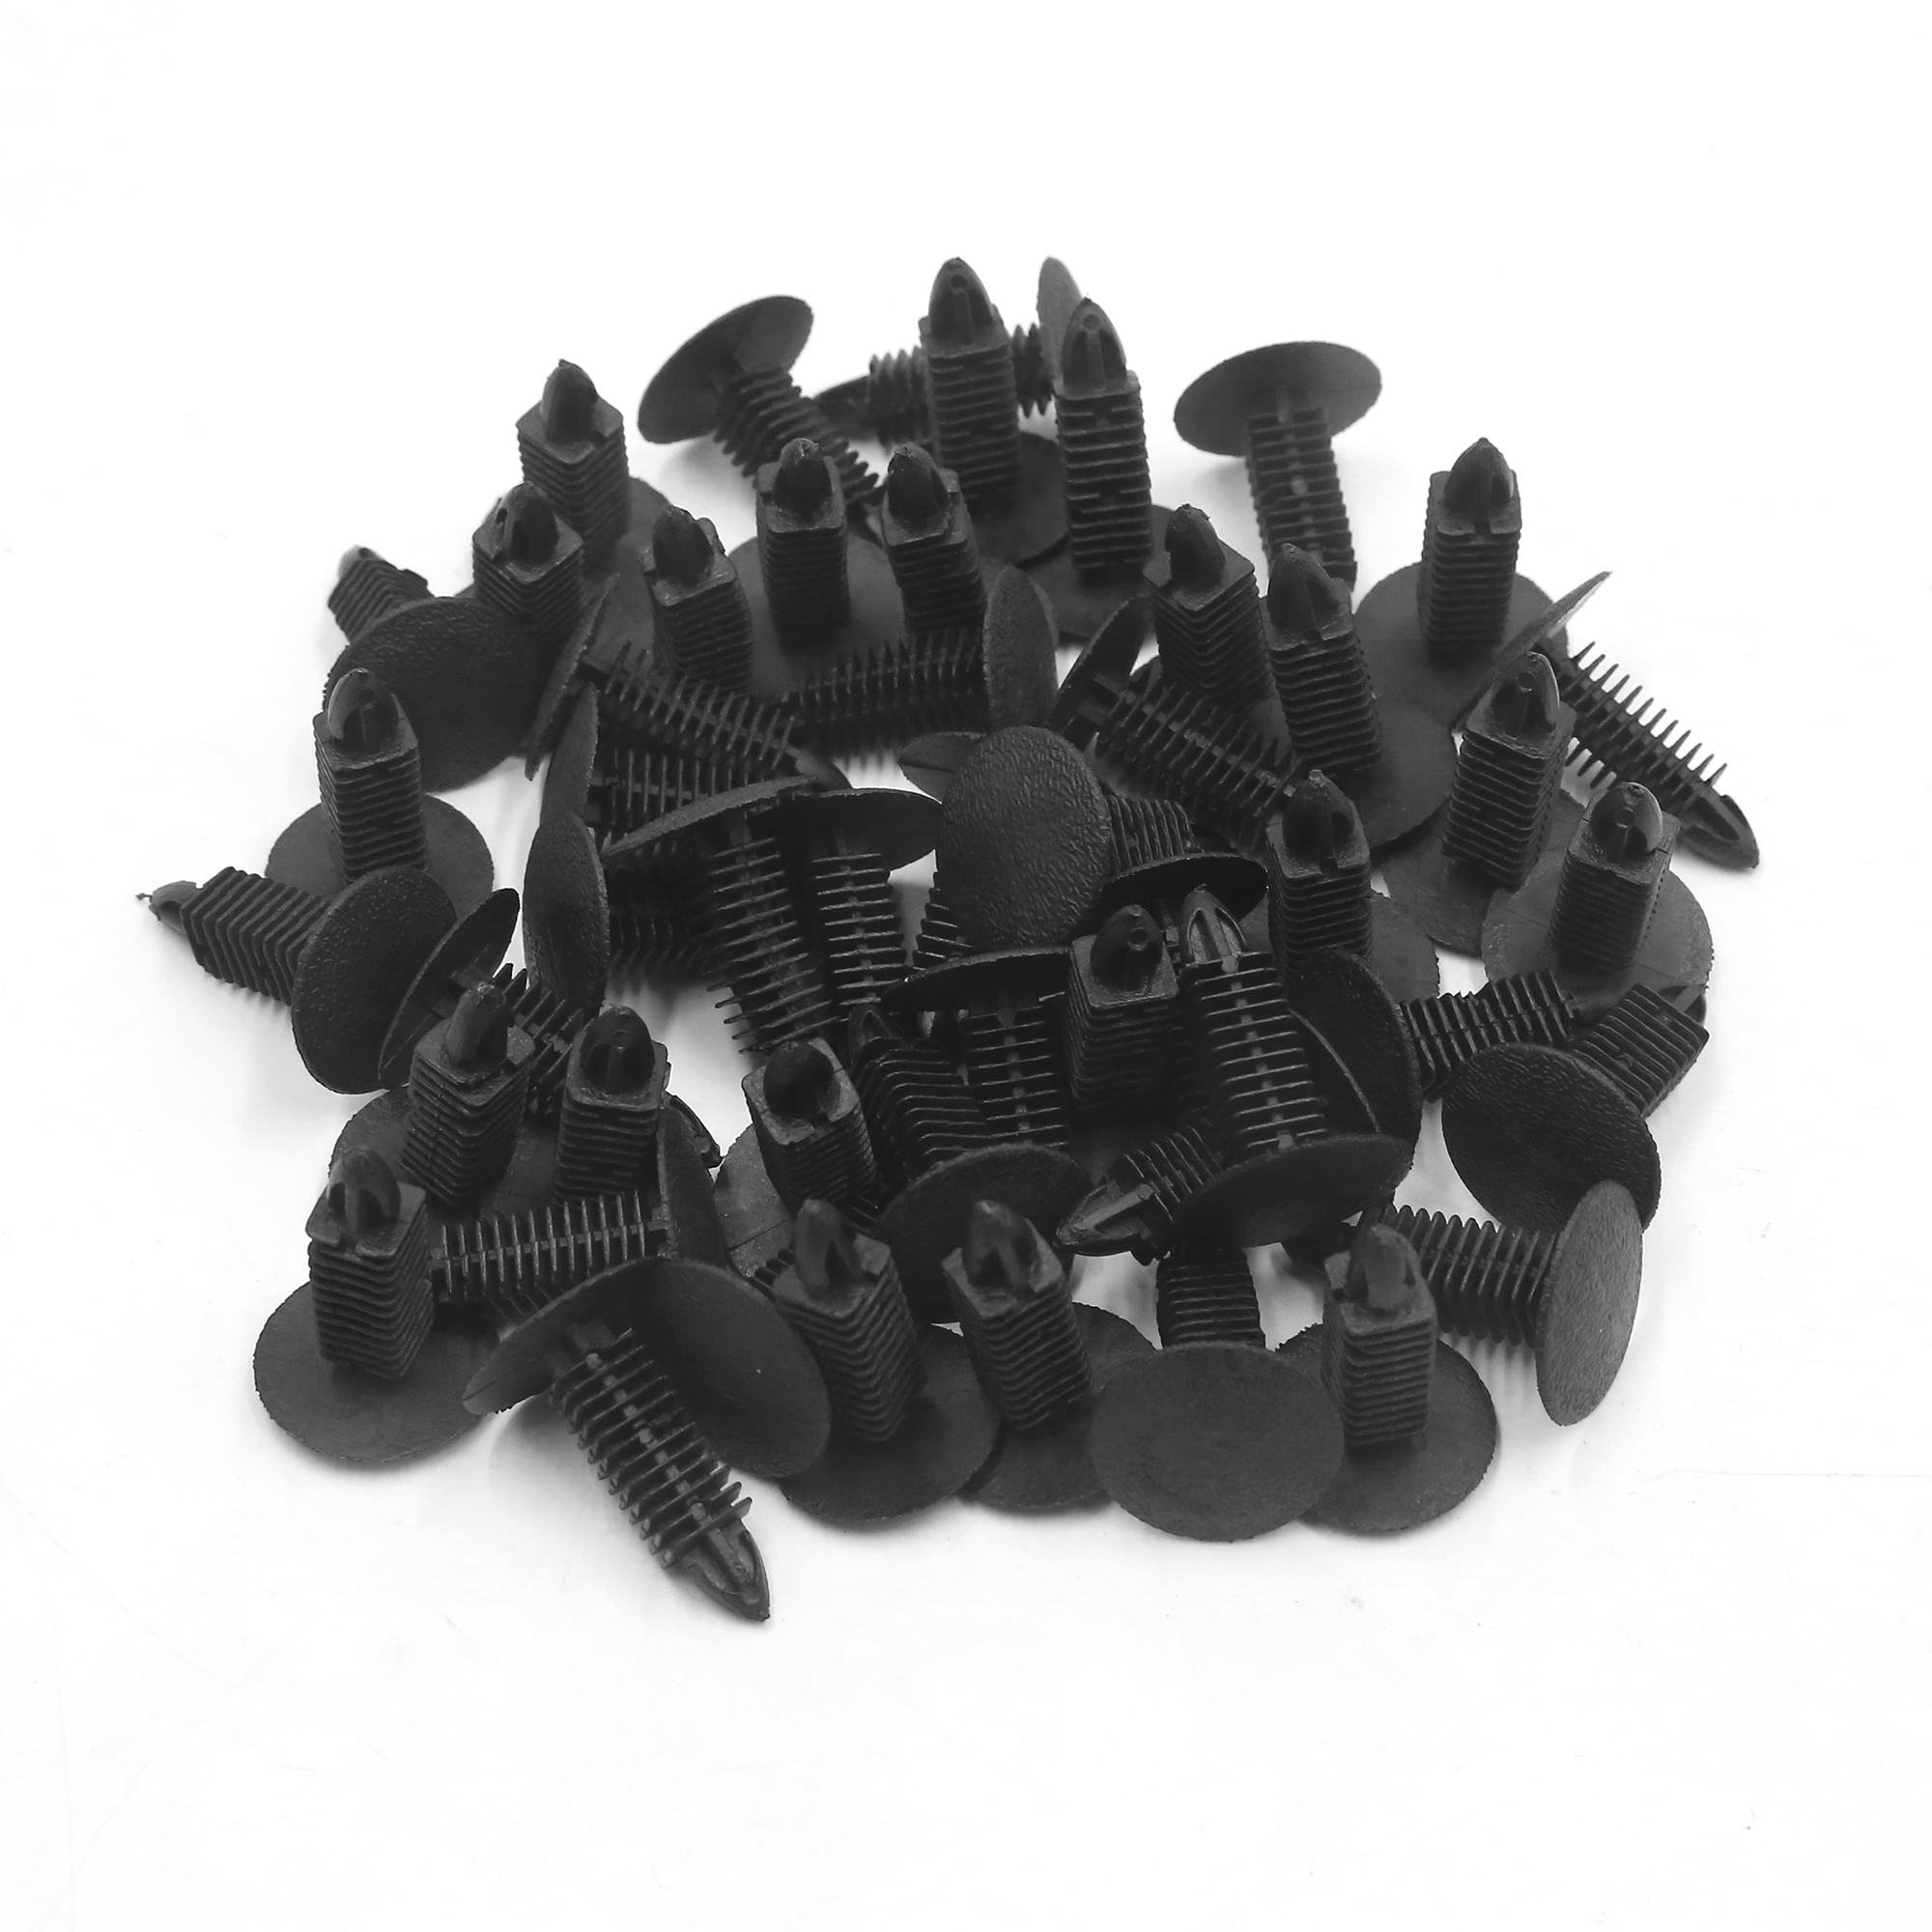 50 Pcs 7mm Hole Black Plastic Car Door Panel Retainer Clips Rivet Fastener